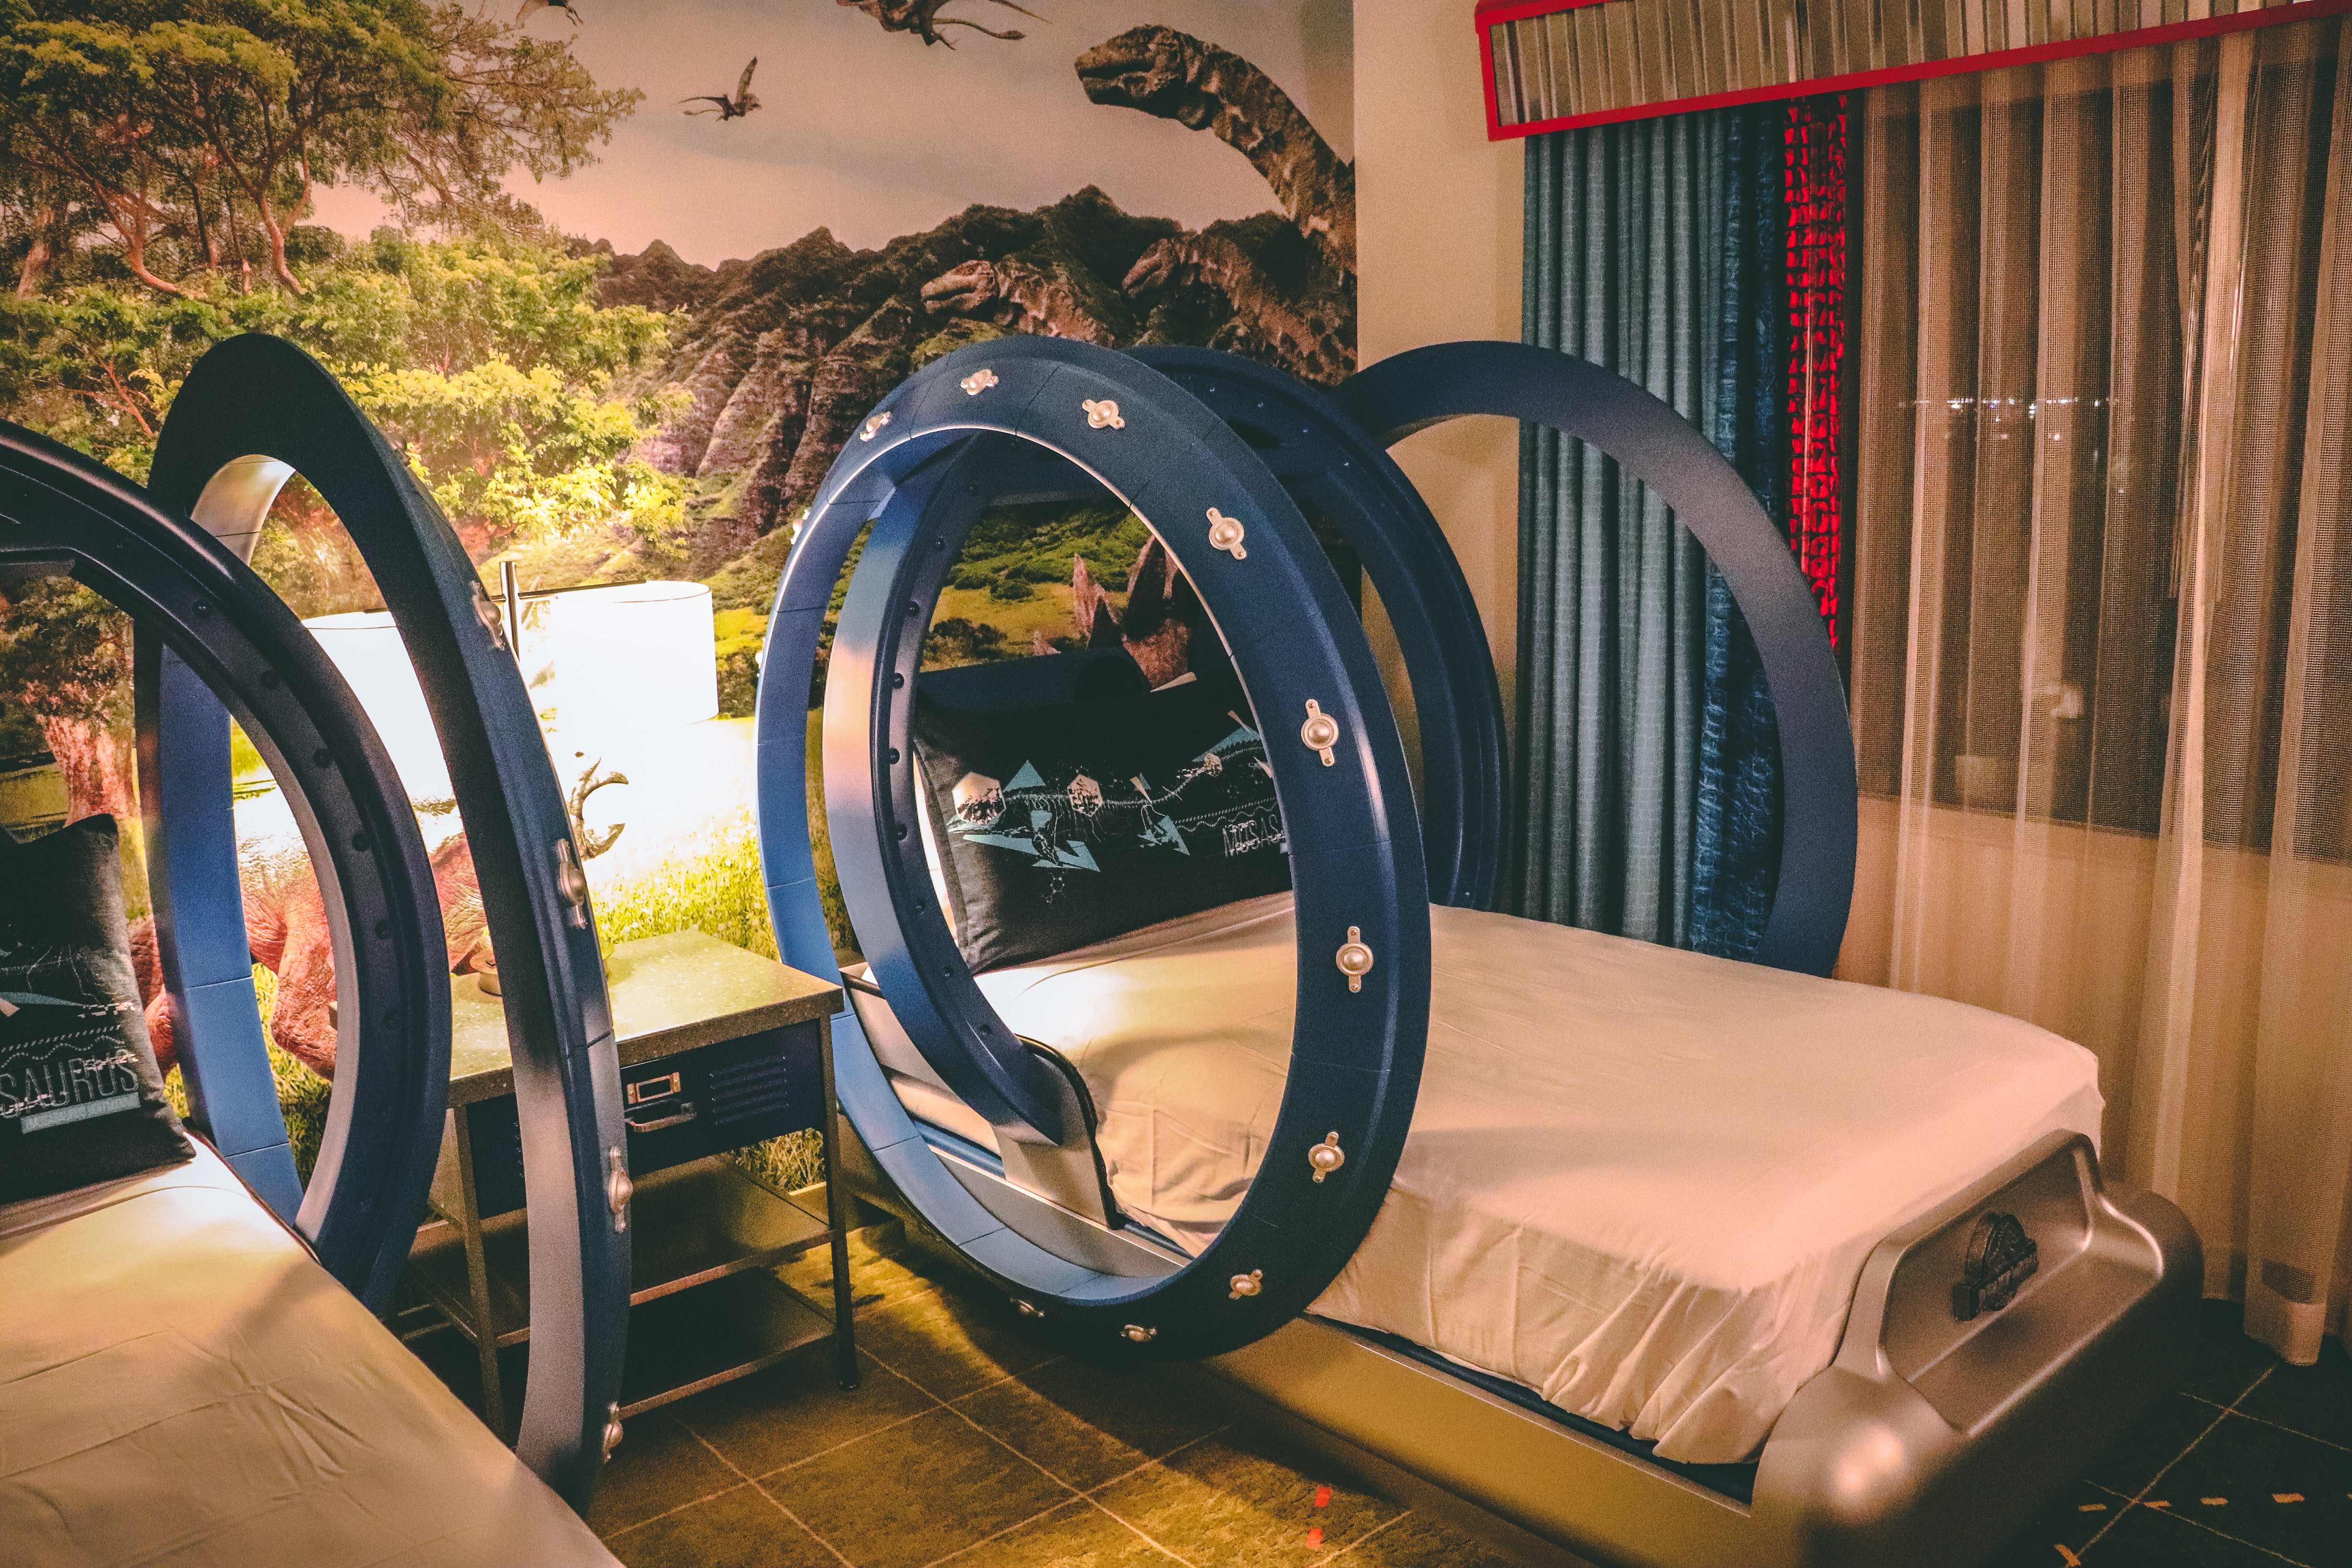 Royal Pacific Resort Room Tour Jurassic World Kids Suite